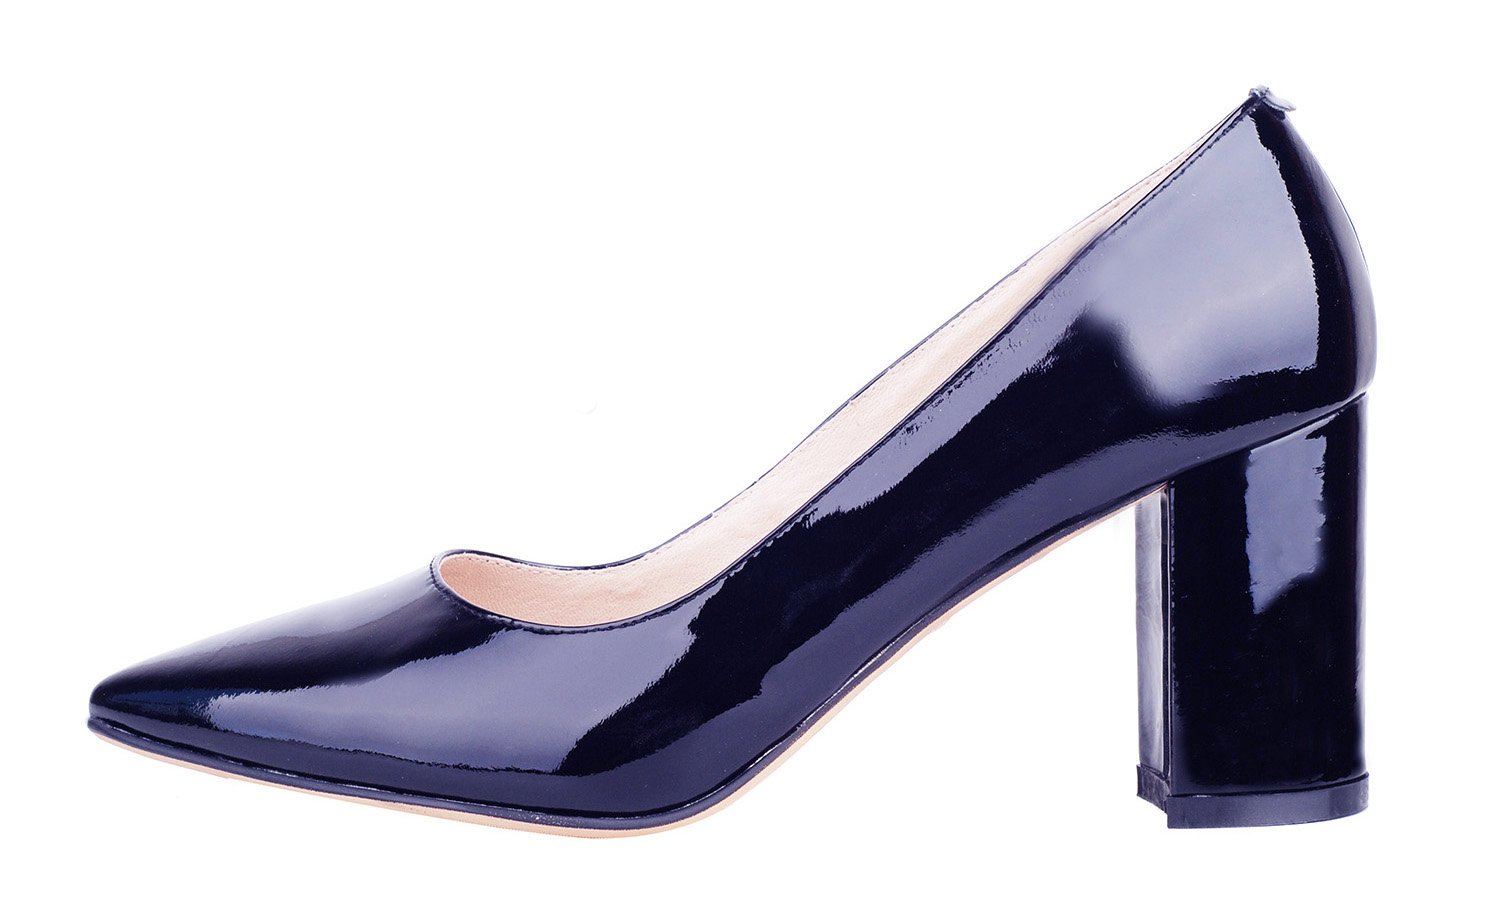 queenfoot Women's Mid Chunky Heel Pointed Toe Elegant Style Genuine Leather Comfort Dress Pumps Shoes Navy Patent 8 B(M) US